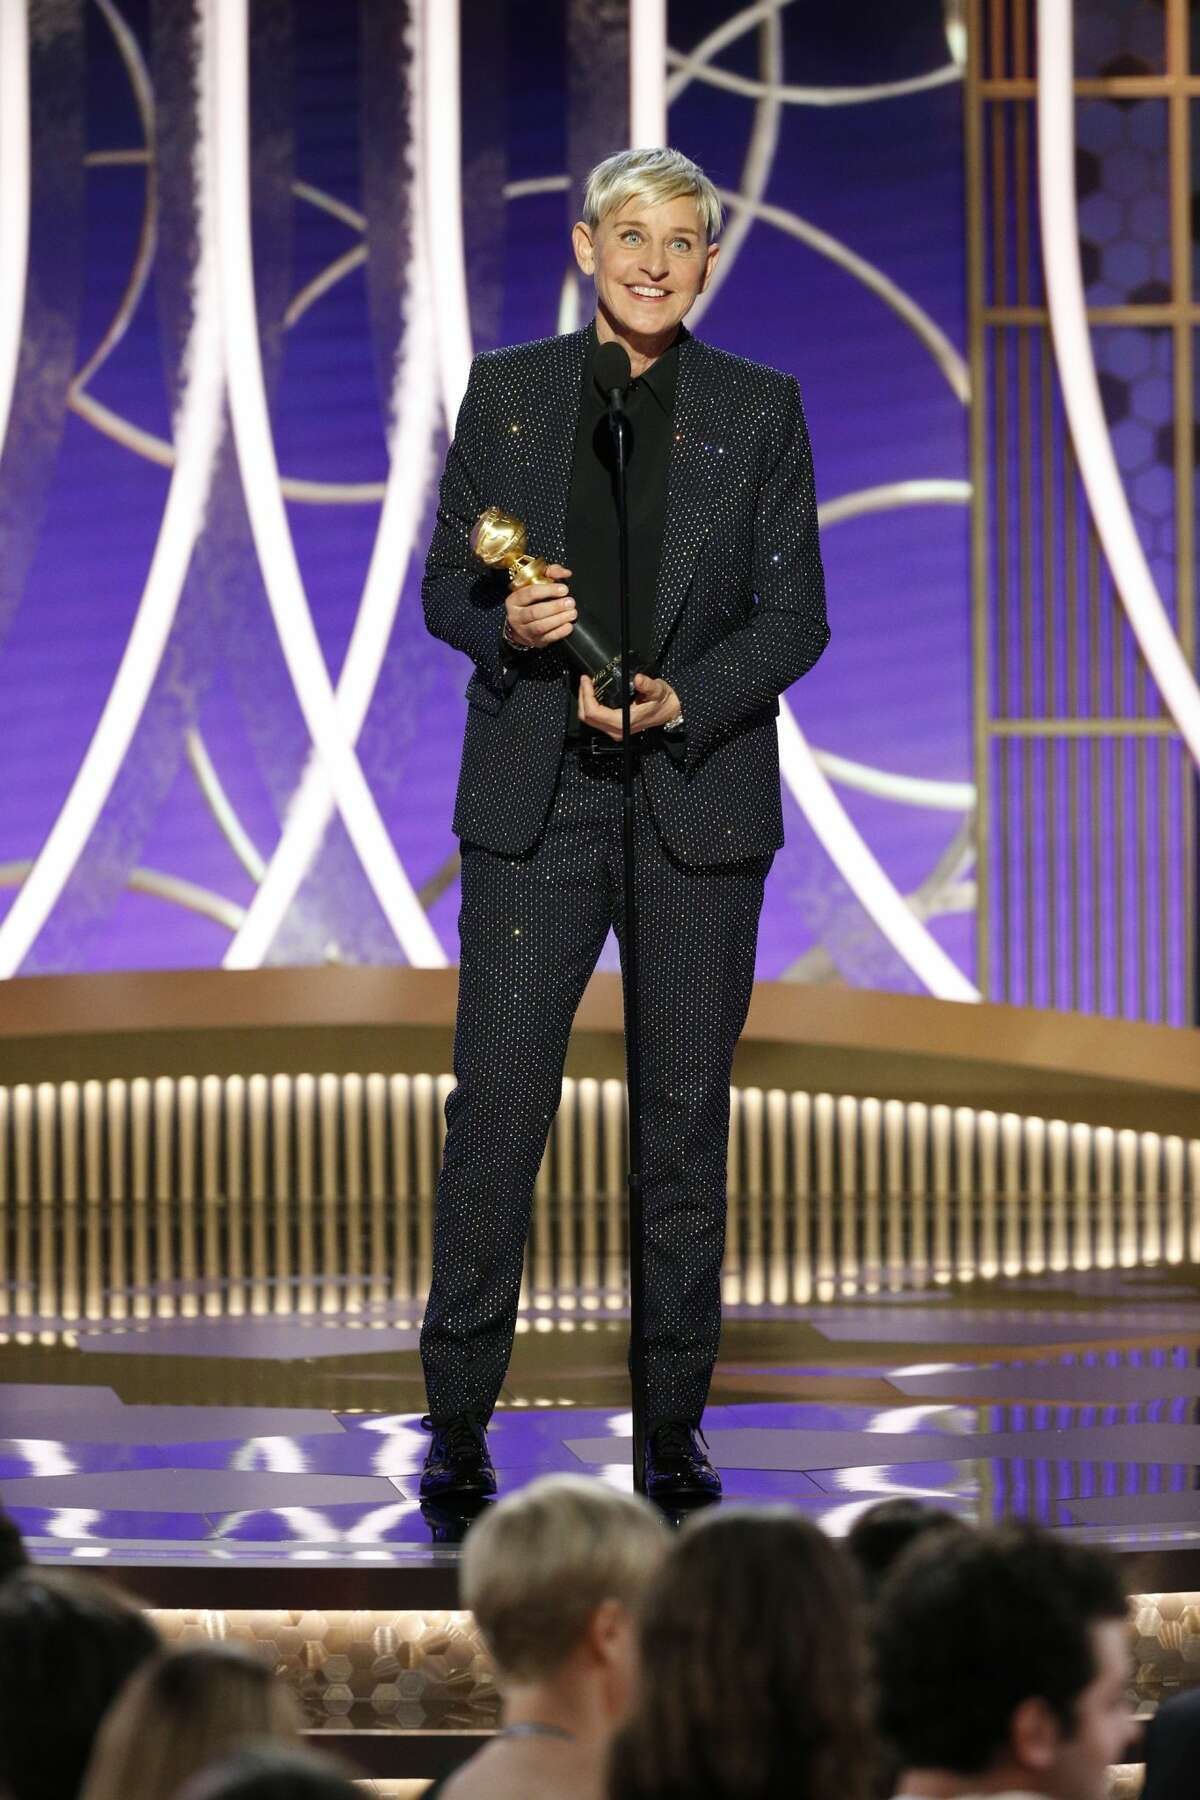 In this handout photo provided by NBCUniversal Media, LLC, Ellen DeGeneres accepts the CAROL BURNETT AWARD onstage during the 76th Annual Golden Globe Awards at The Beverly Hilton Hotel on January 5, 2020 in Beverly Hills, California.